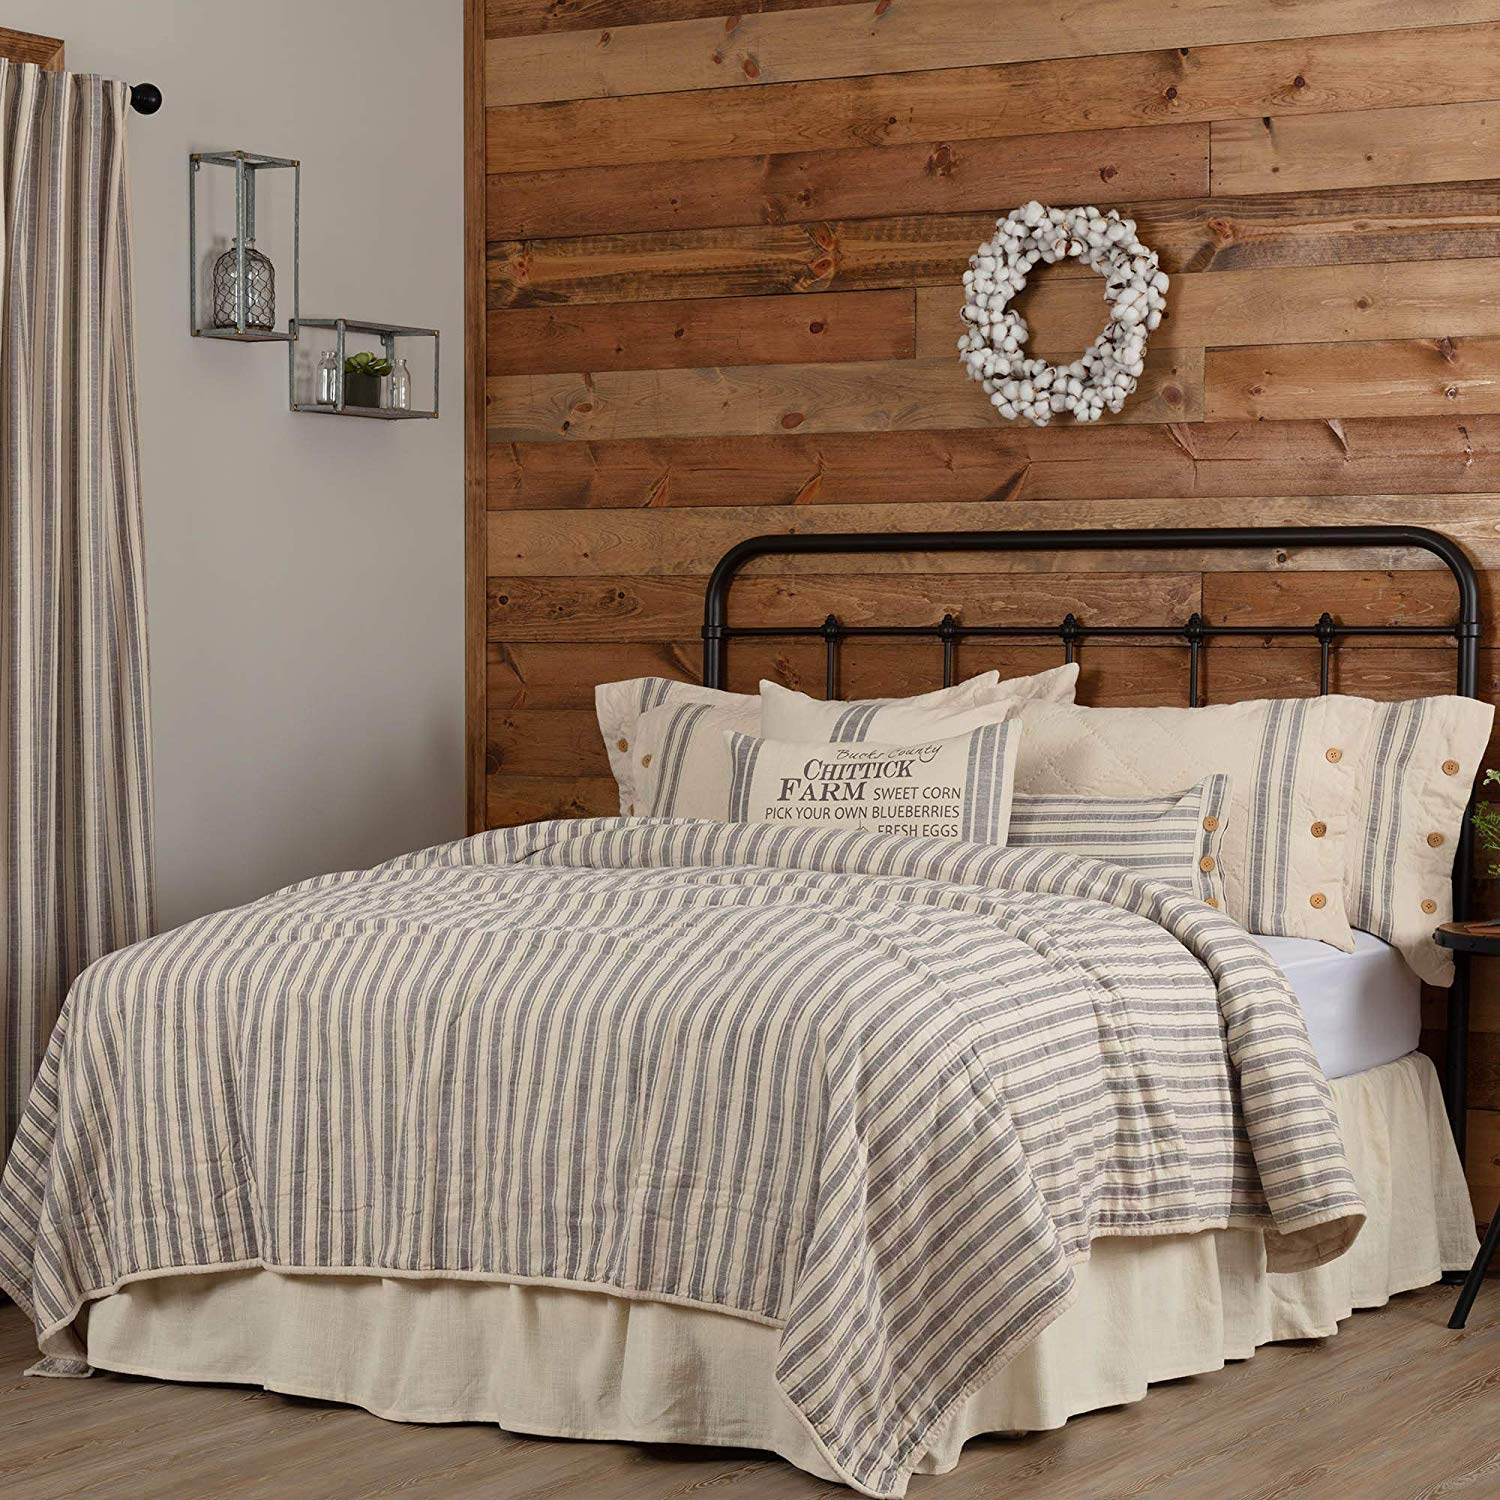 farmhouse-bedding-ticking-stripe